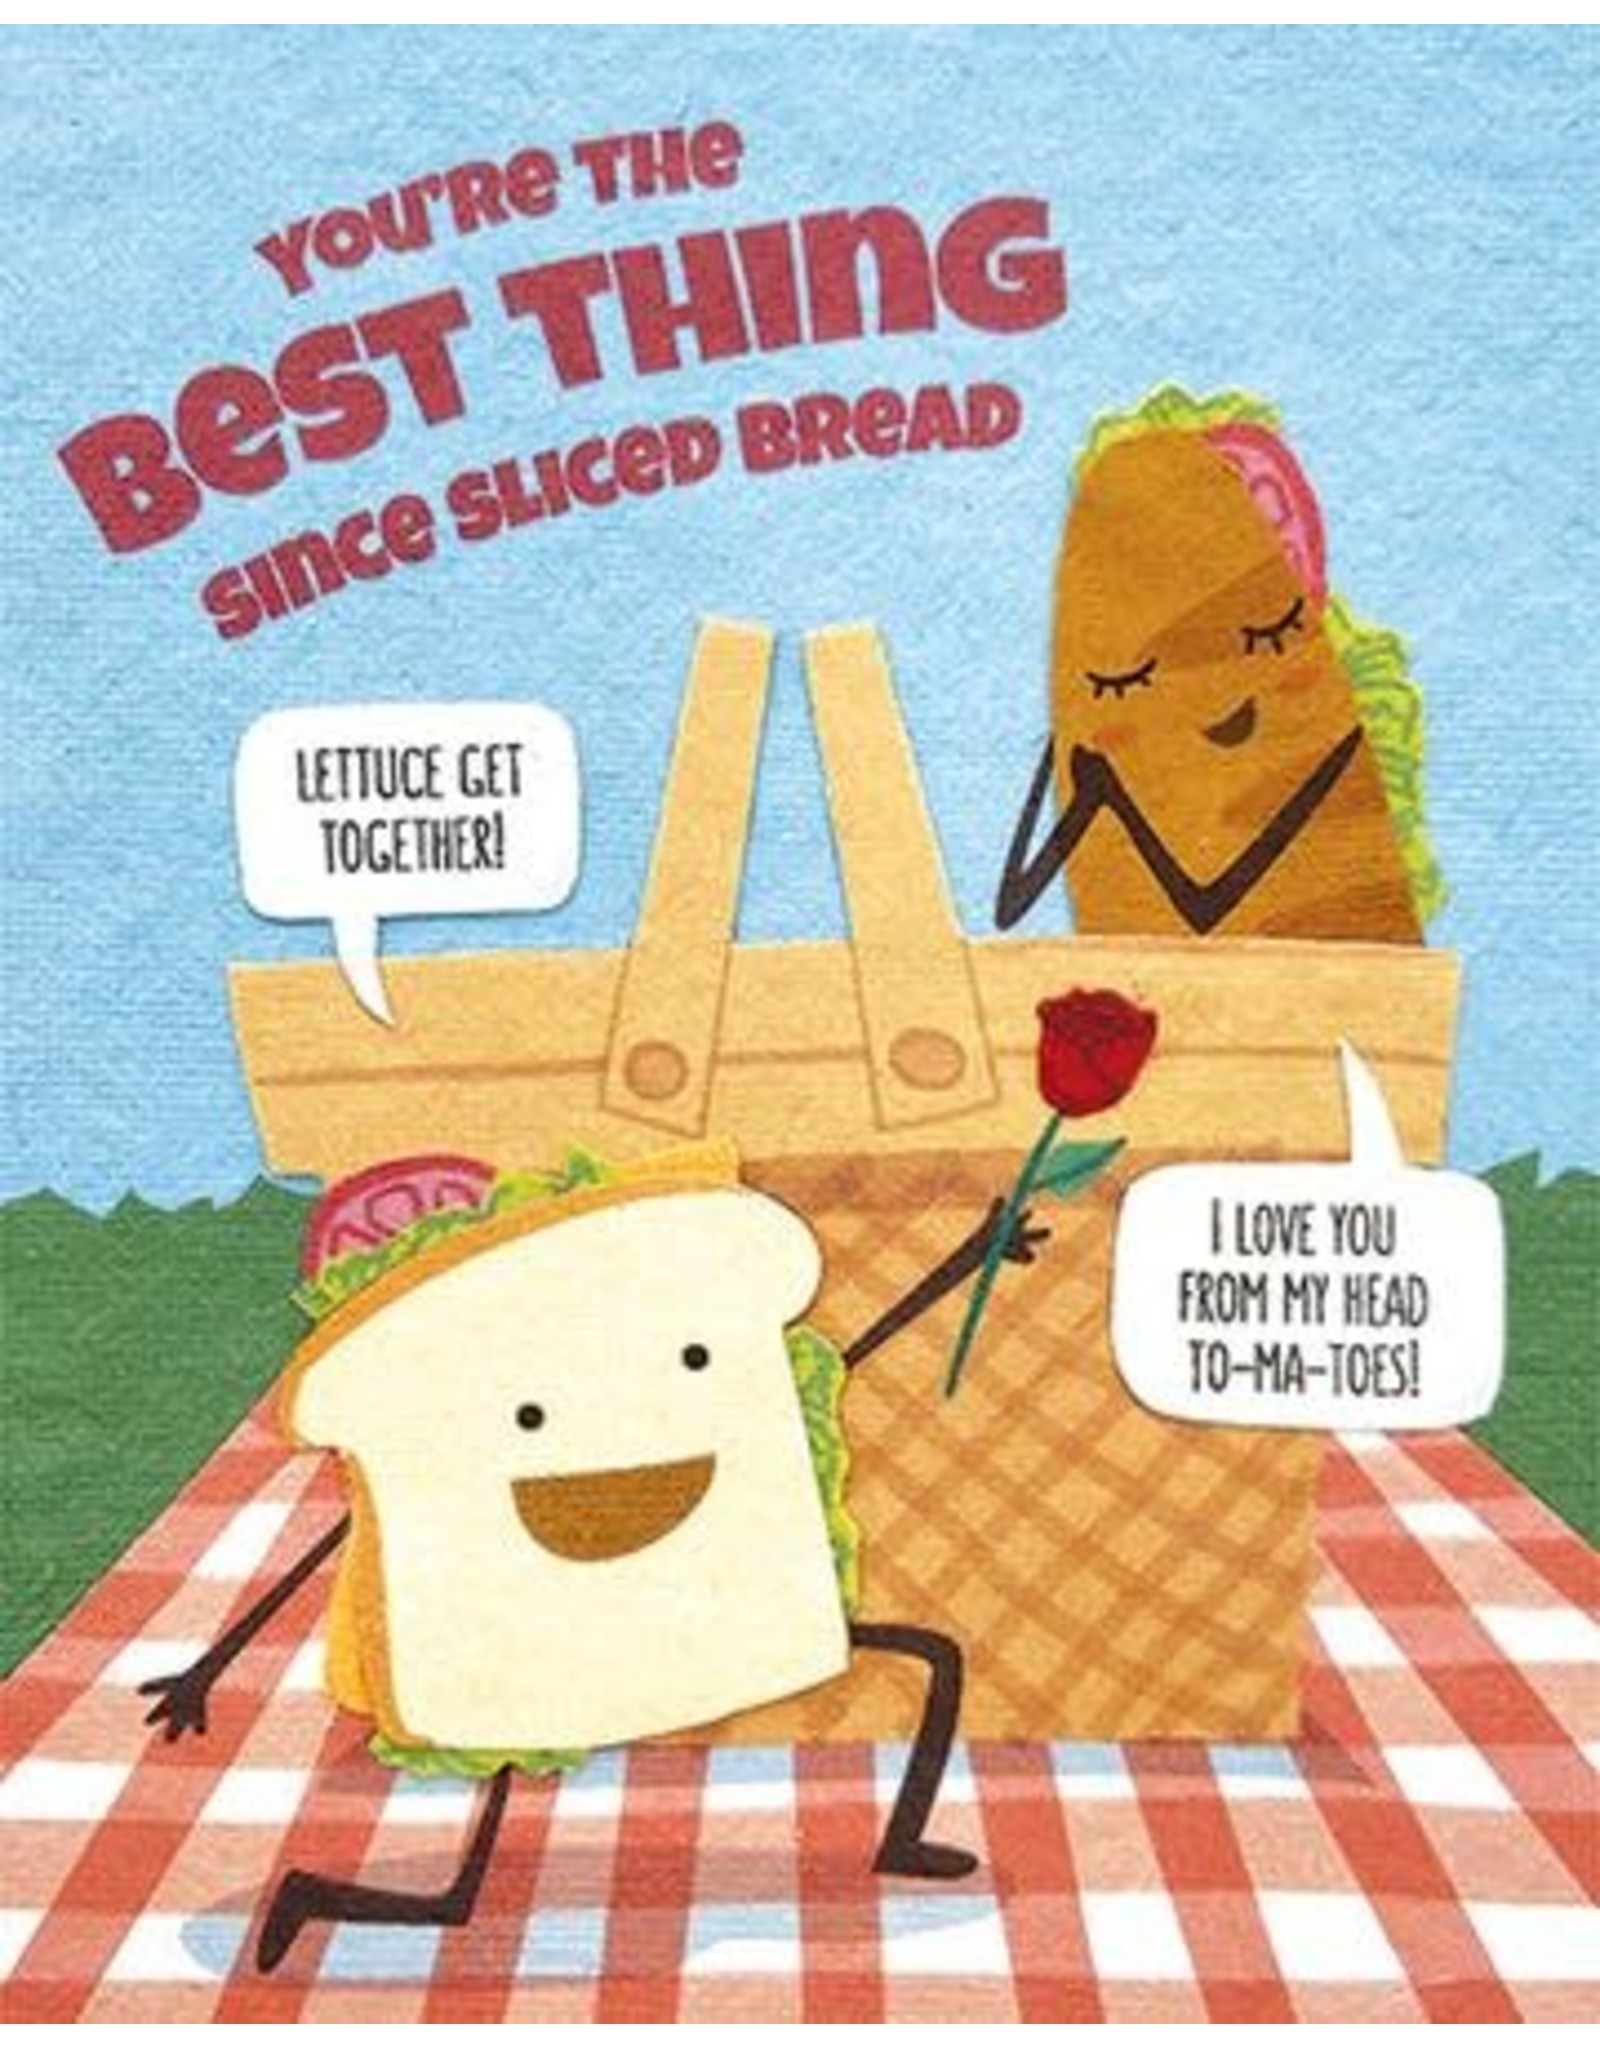 Good Paper Sliced Bread Love Greeting Card, Philippines